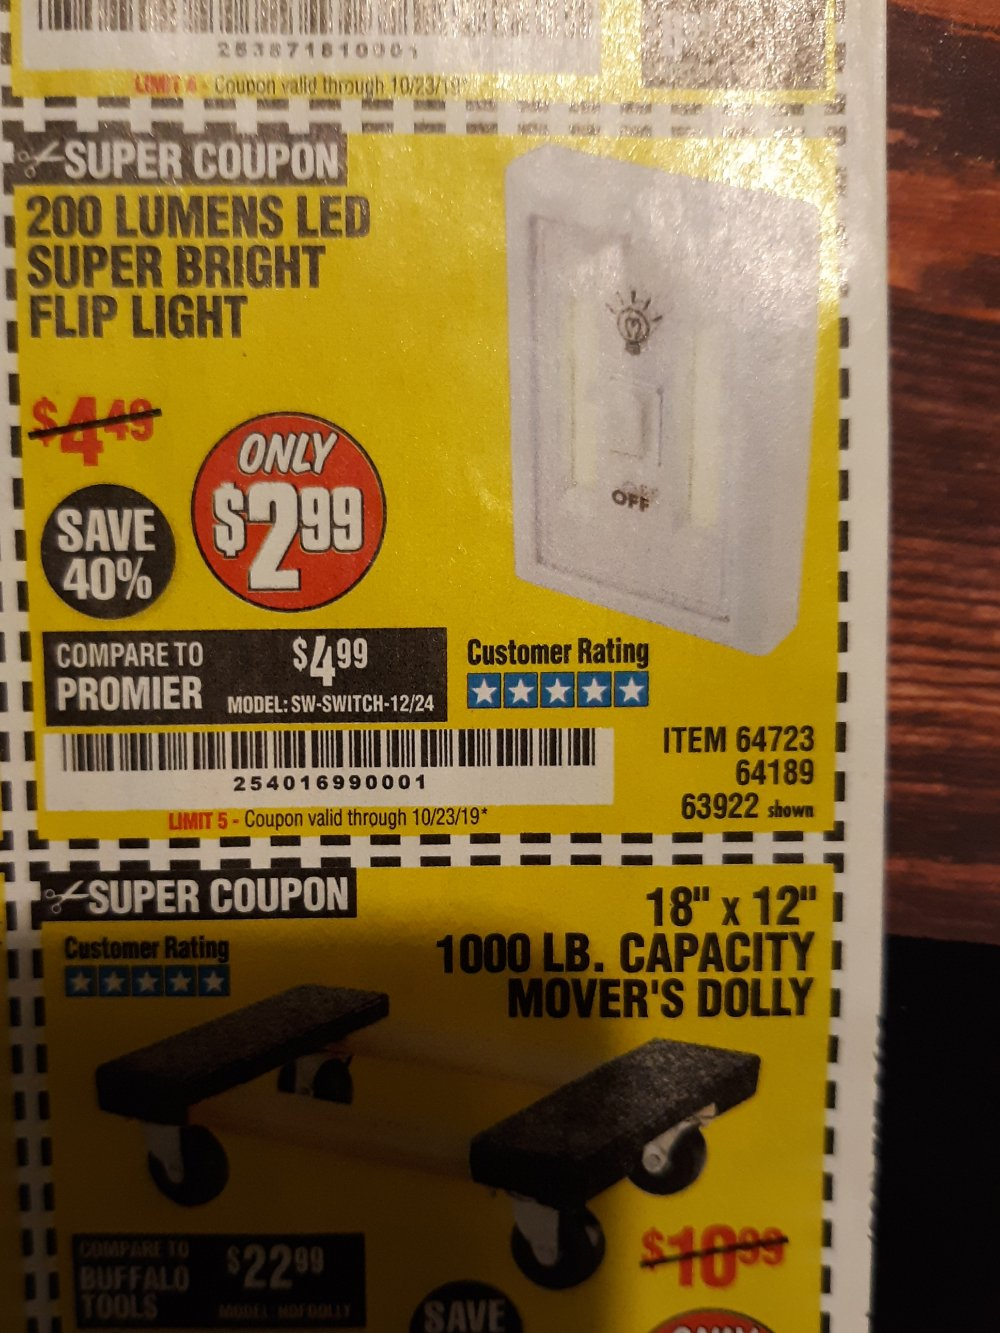 Harbor Freight Coupon, HF Coupons - 200 Lumens Led Super Bright Flip Light